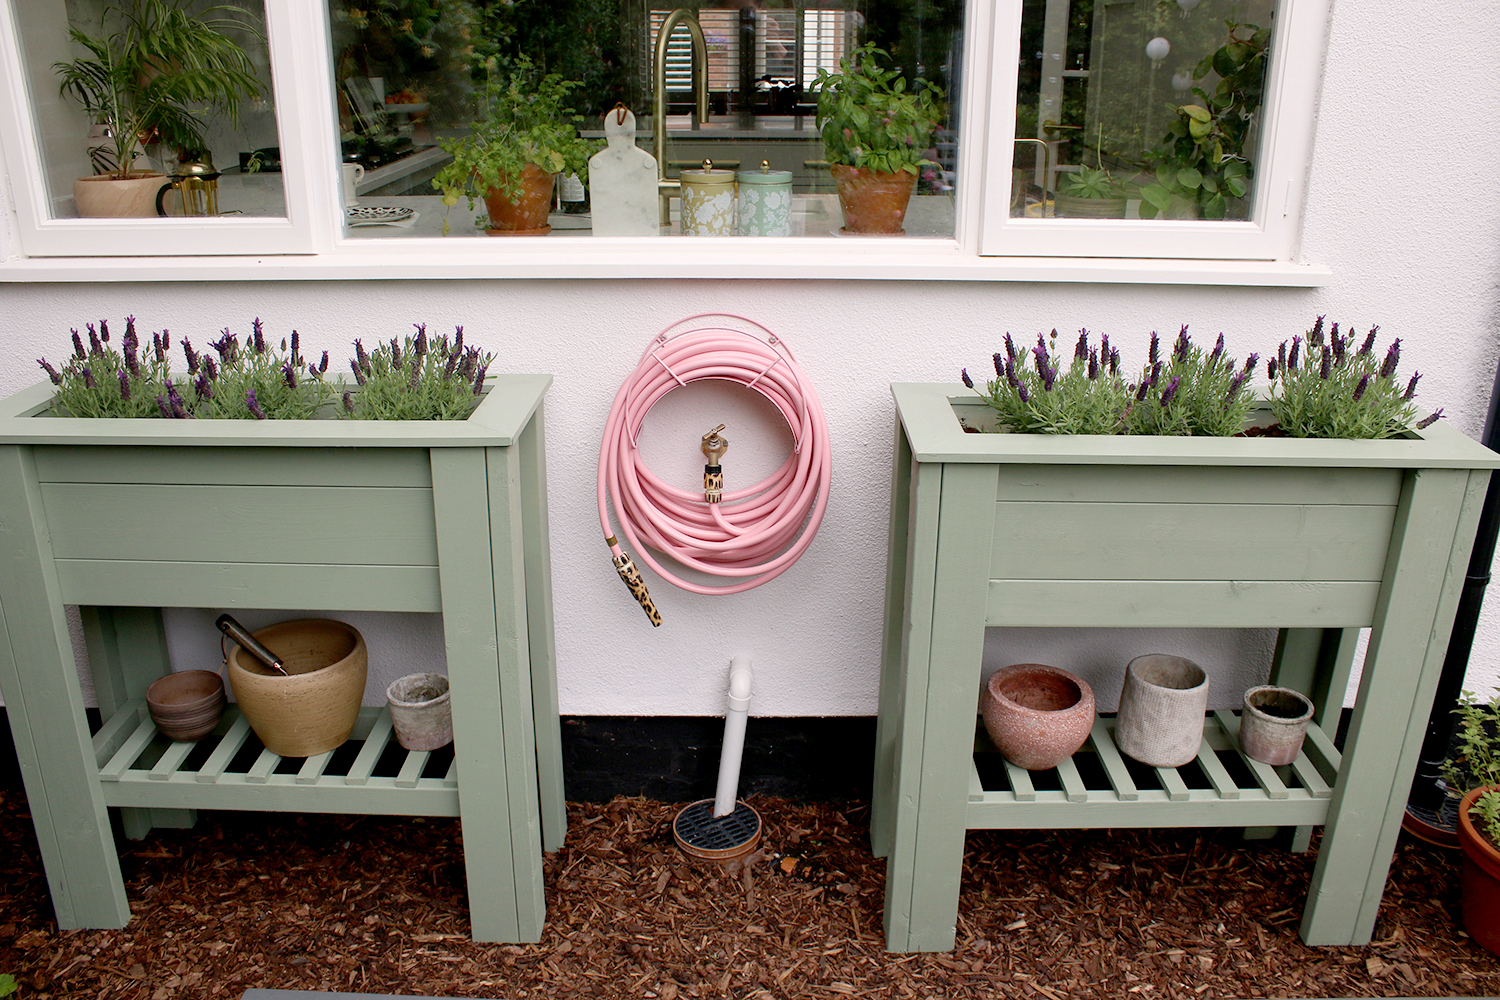 pair of sage green standing raised planters with pink garden hose under window